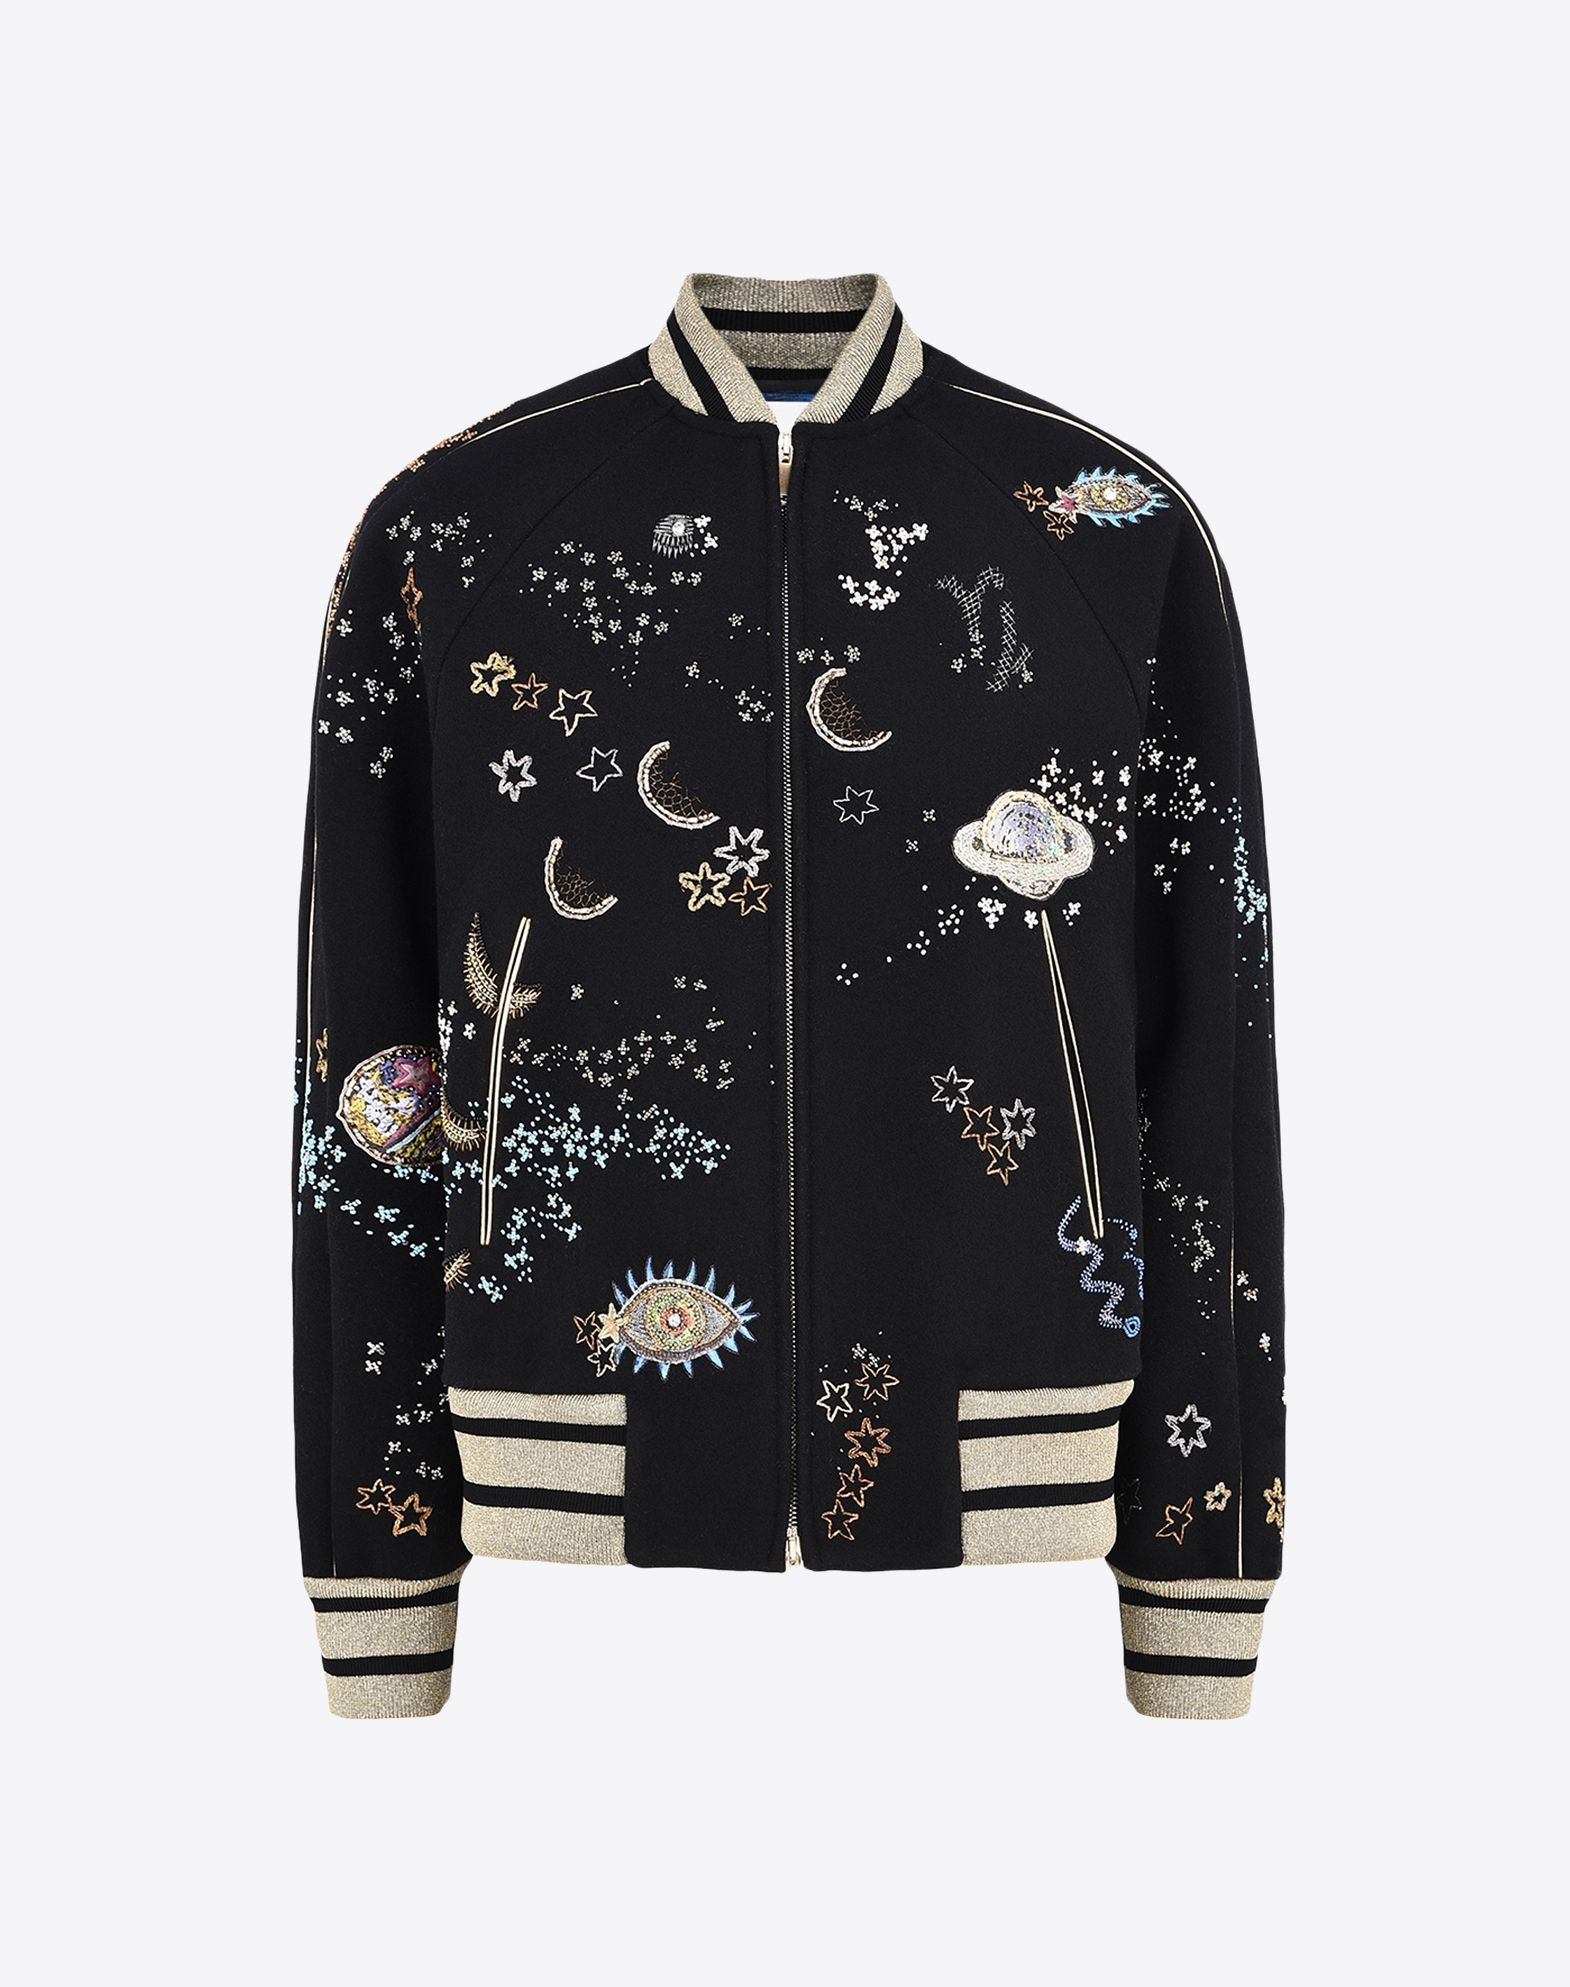 Valentino varsity jacket in embroidered felt jackets for